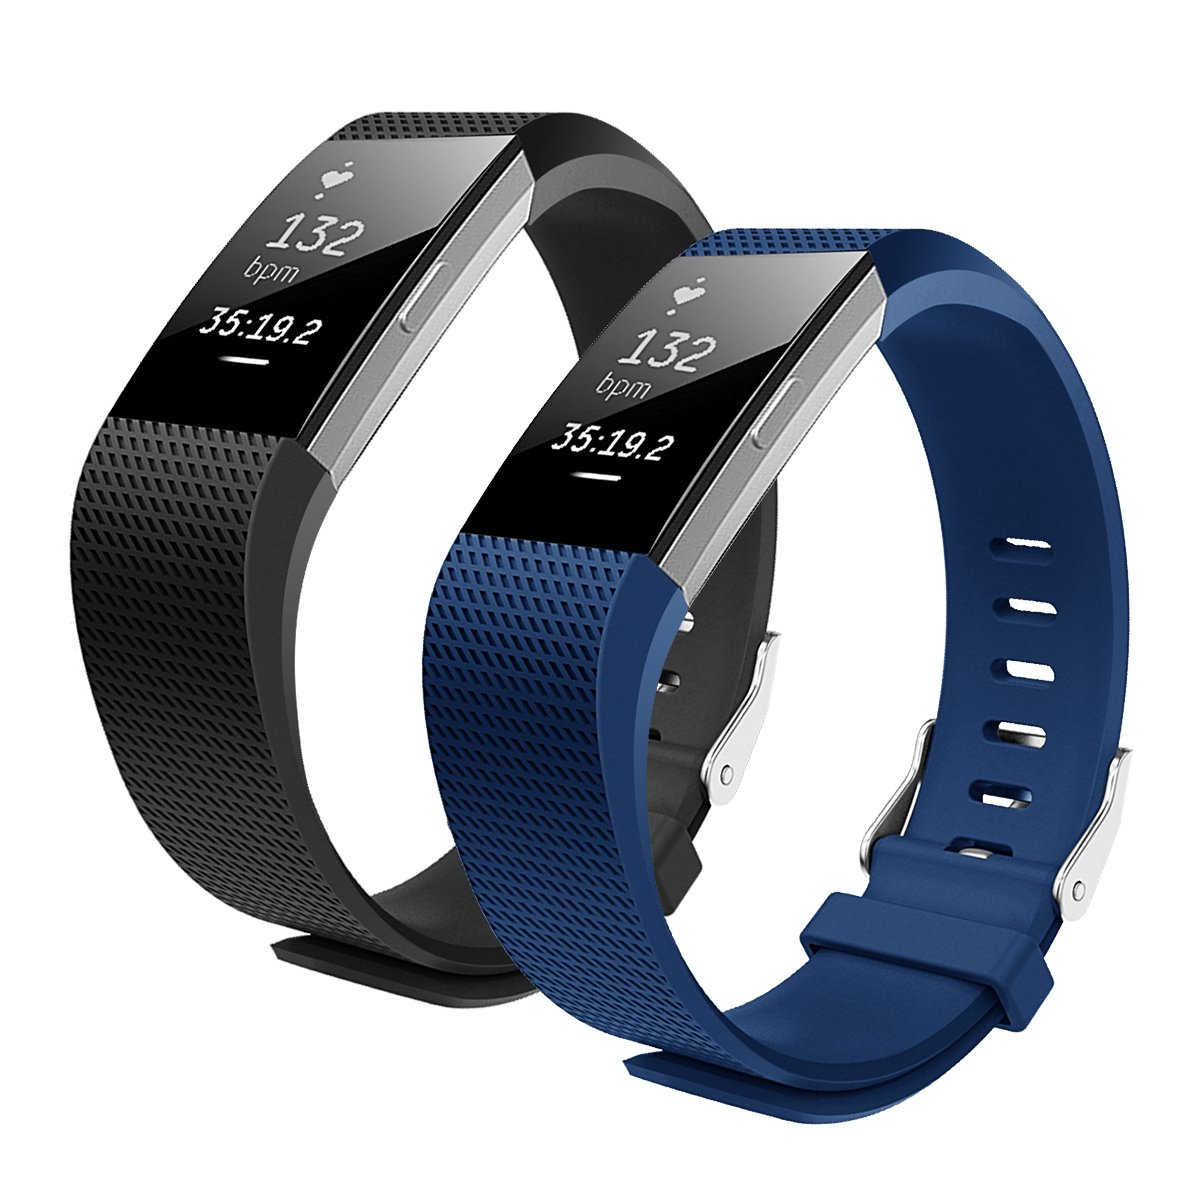 bepackバンドfor Fitbit Charge 2、ソフトTPU調節可能交換スポーツストラップバンドfor Fitbit Charge 2 Smartwatchハートレートフィットネスリストバンド B01MYG3OWS ブラック+ブルー Large(5.6-8.1 in)